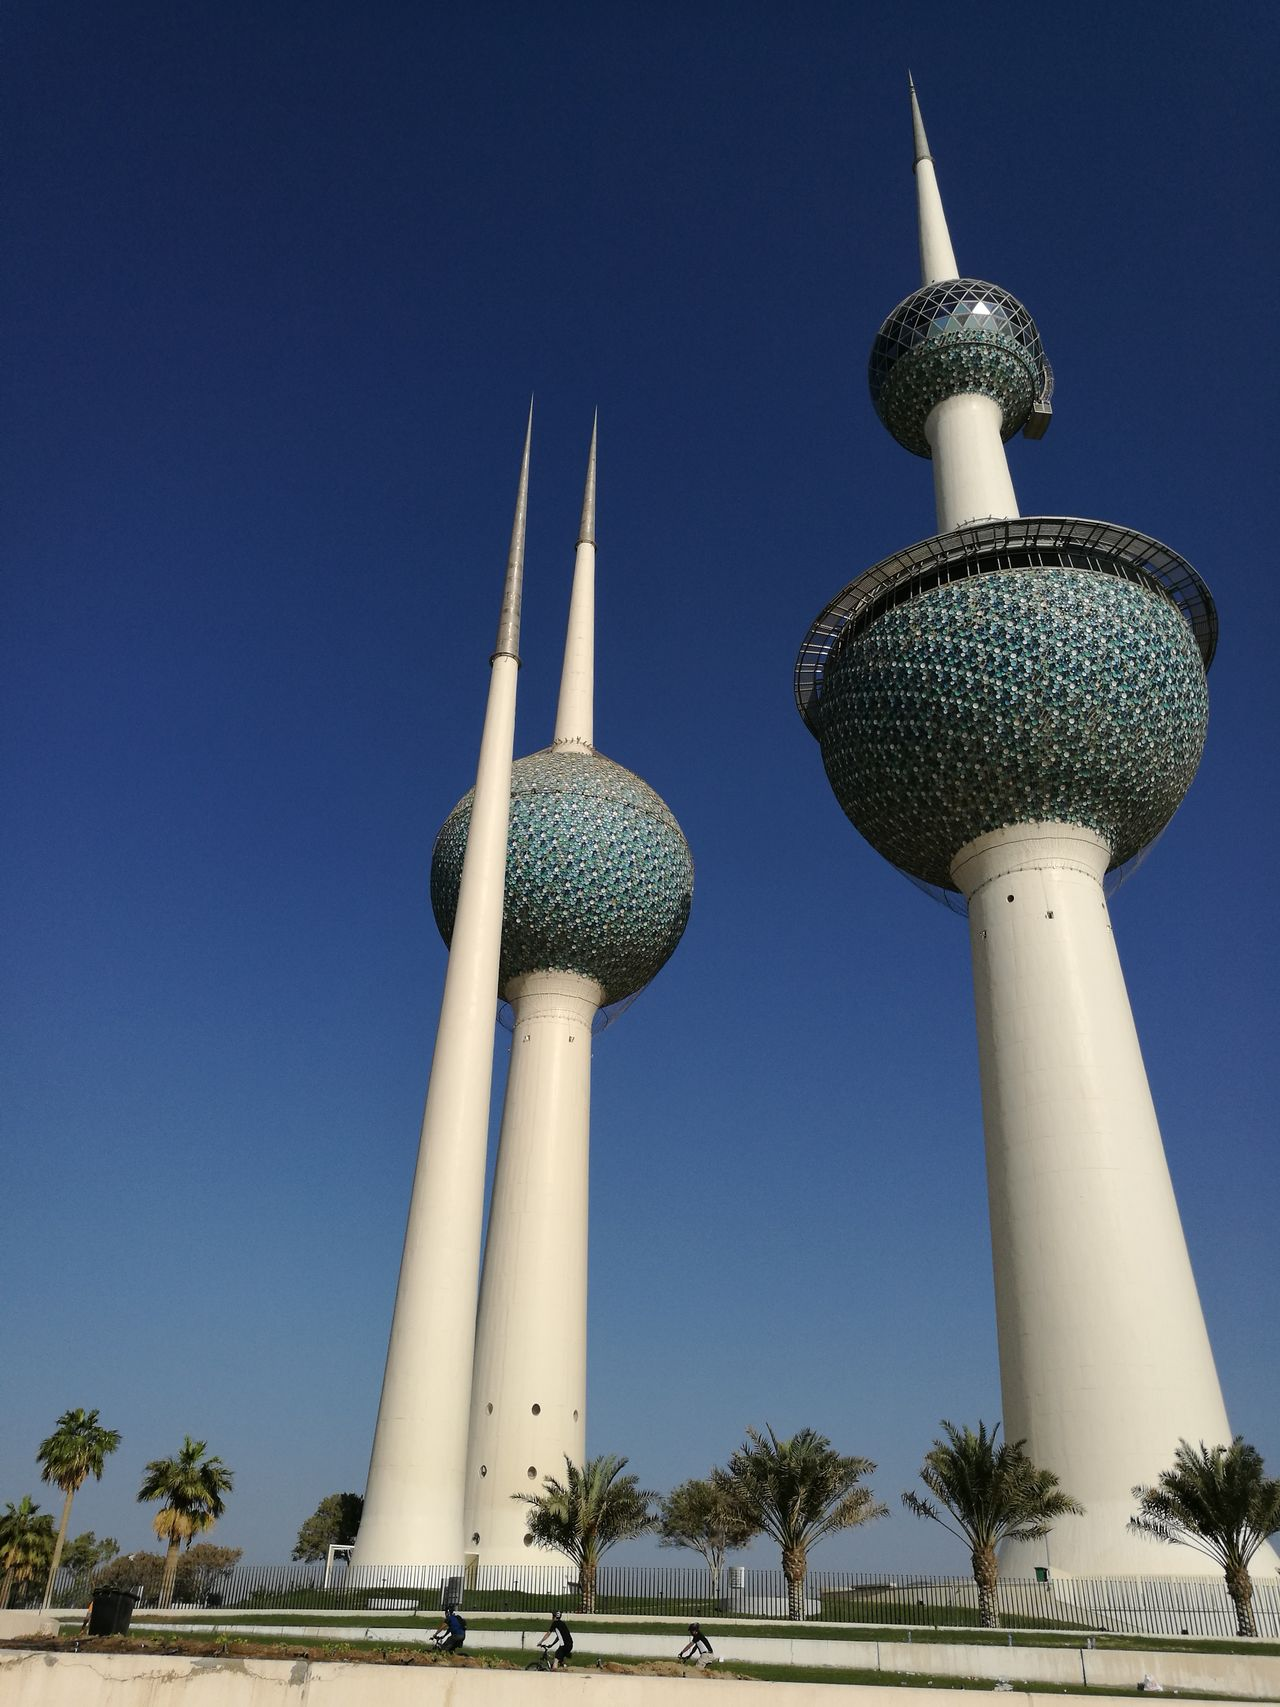 Kuwait Towers Blue Tower Low Angle View Architecture Travel Destinations No People Outdoors Travel Dome Architecture Travel Cultures Landmark